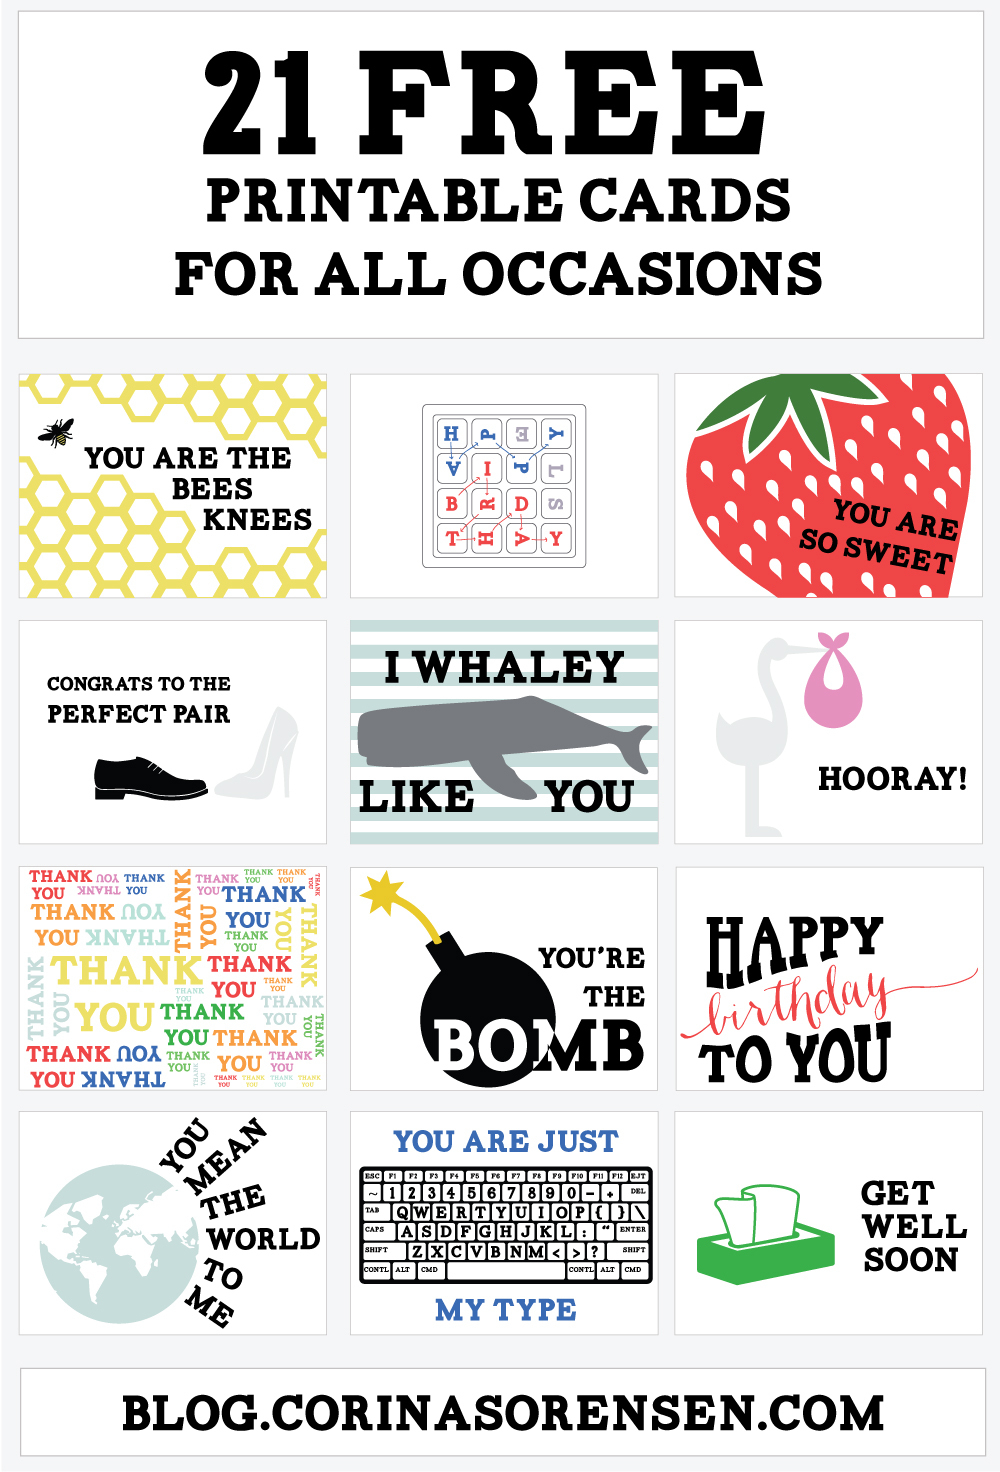 Free Printable Greeting Cards For All Occasions | Download Them Or Print - Free Printable Cards For All Occasions